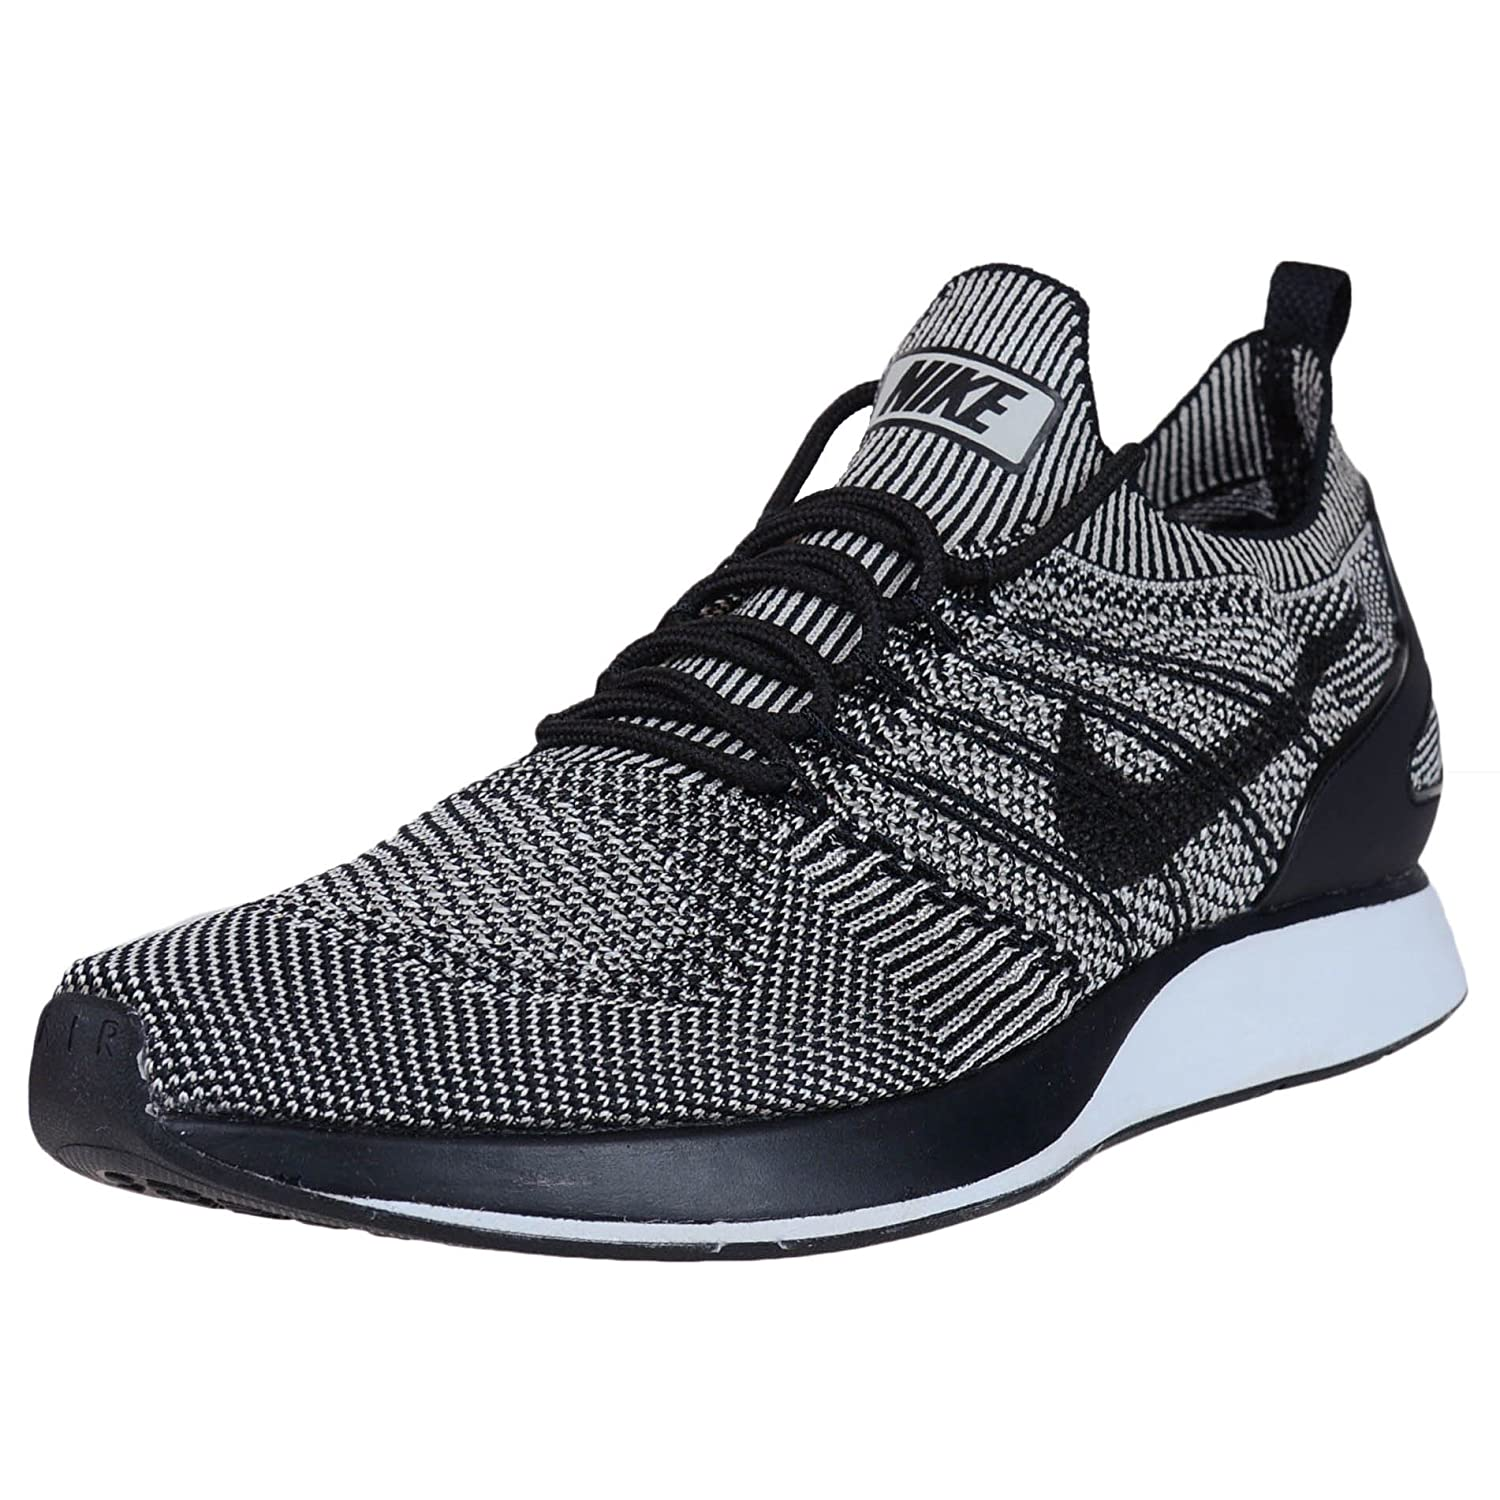 Nike Shoes Air Zoom Flyknit Racer 9 D(M) US|Pale Grey/Black-solar Red